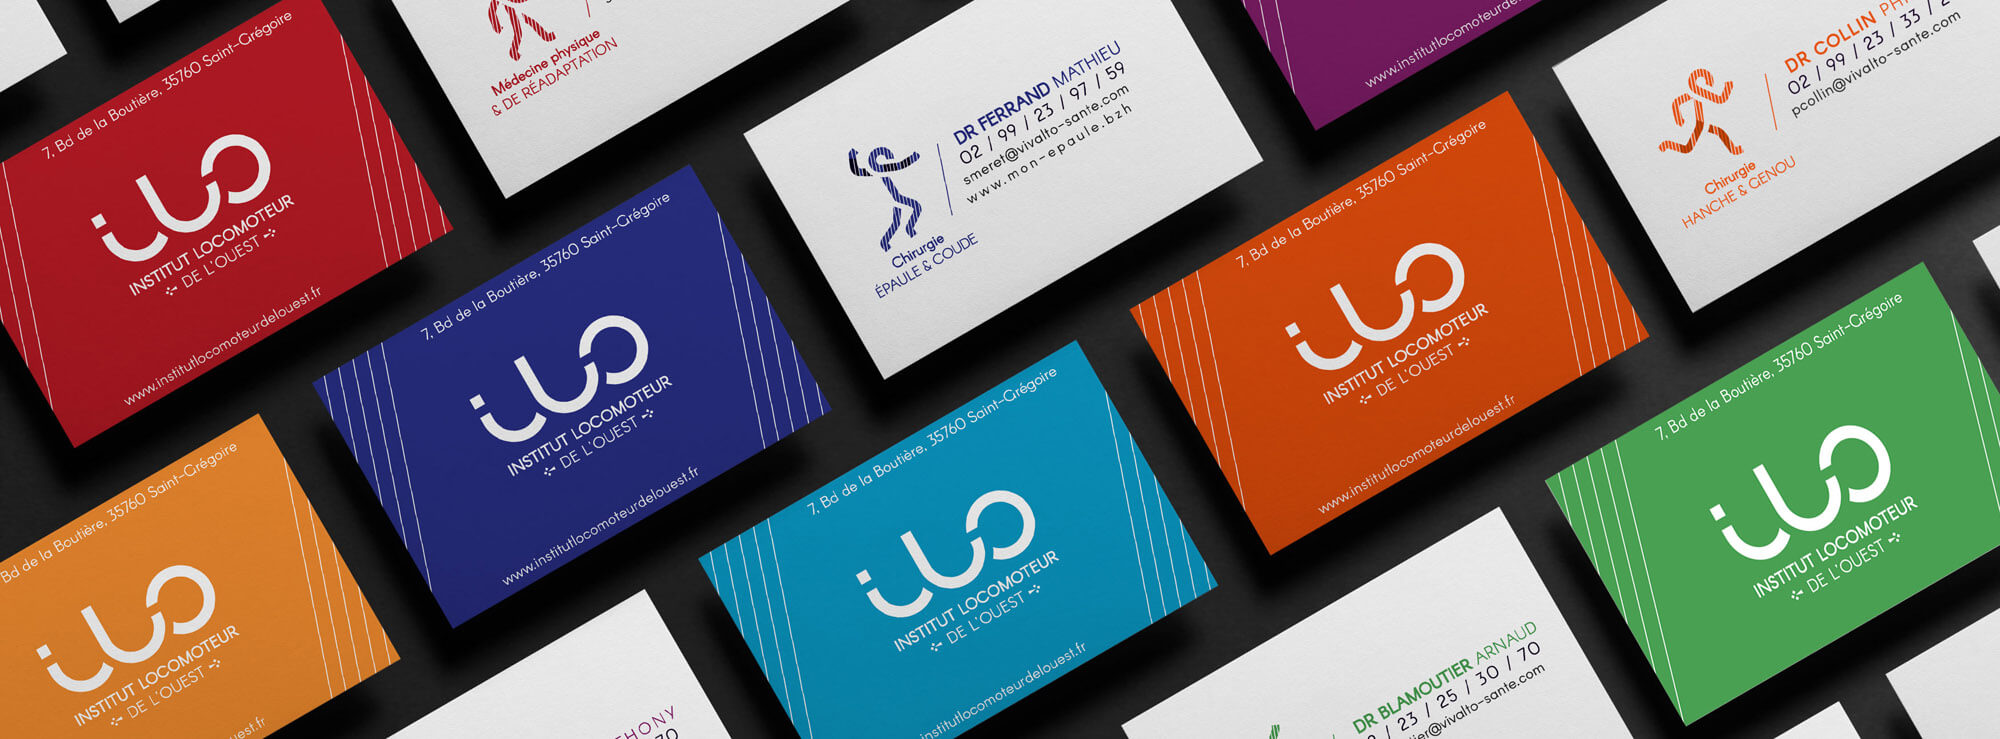 05.ilo logo businesscards.jpg